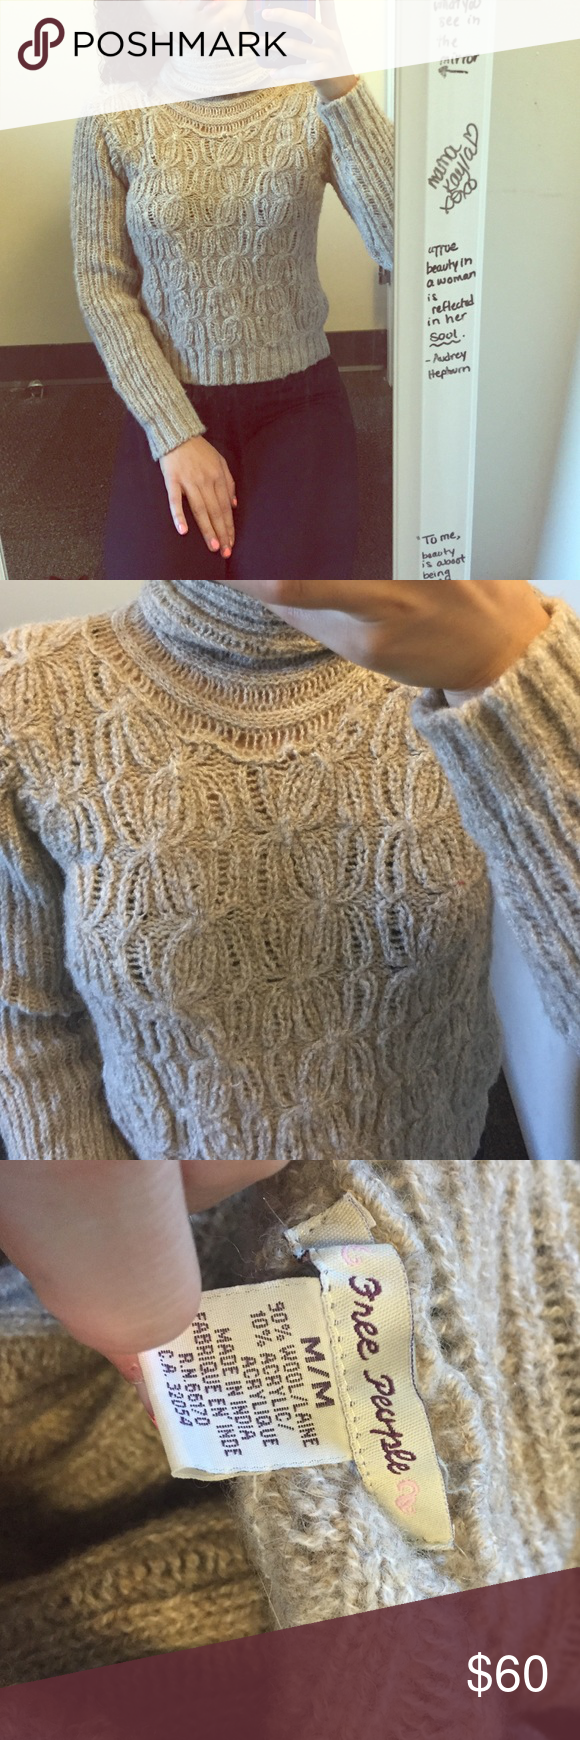 FREE PEOPLE WOOL SWEATER IN MEDIUM This sweater has been worn twice and is in excellent condition. It's perfect for the winter time as it is extremely warm an will keep you nice and toasty in the cold :). It has incredible detailing as seen in the picture. A true staple in anyone's closet. Comment with questions!!!! 🤗 Free People Sweaters Cowl & Turtlenecks